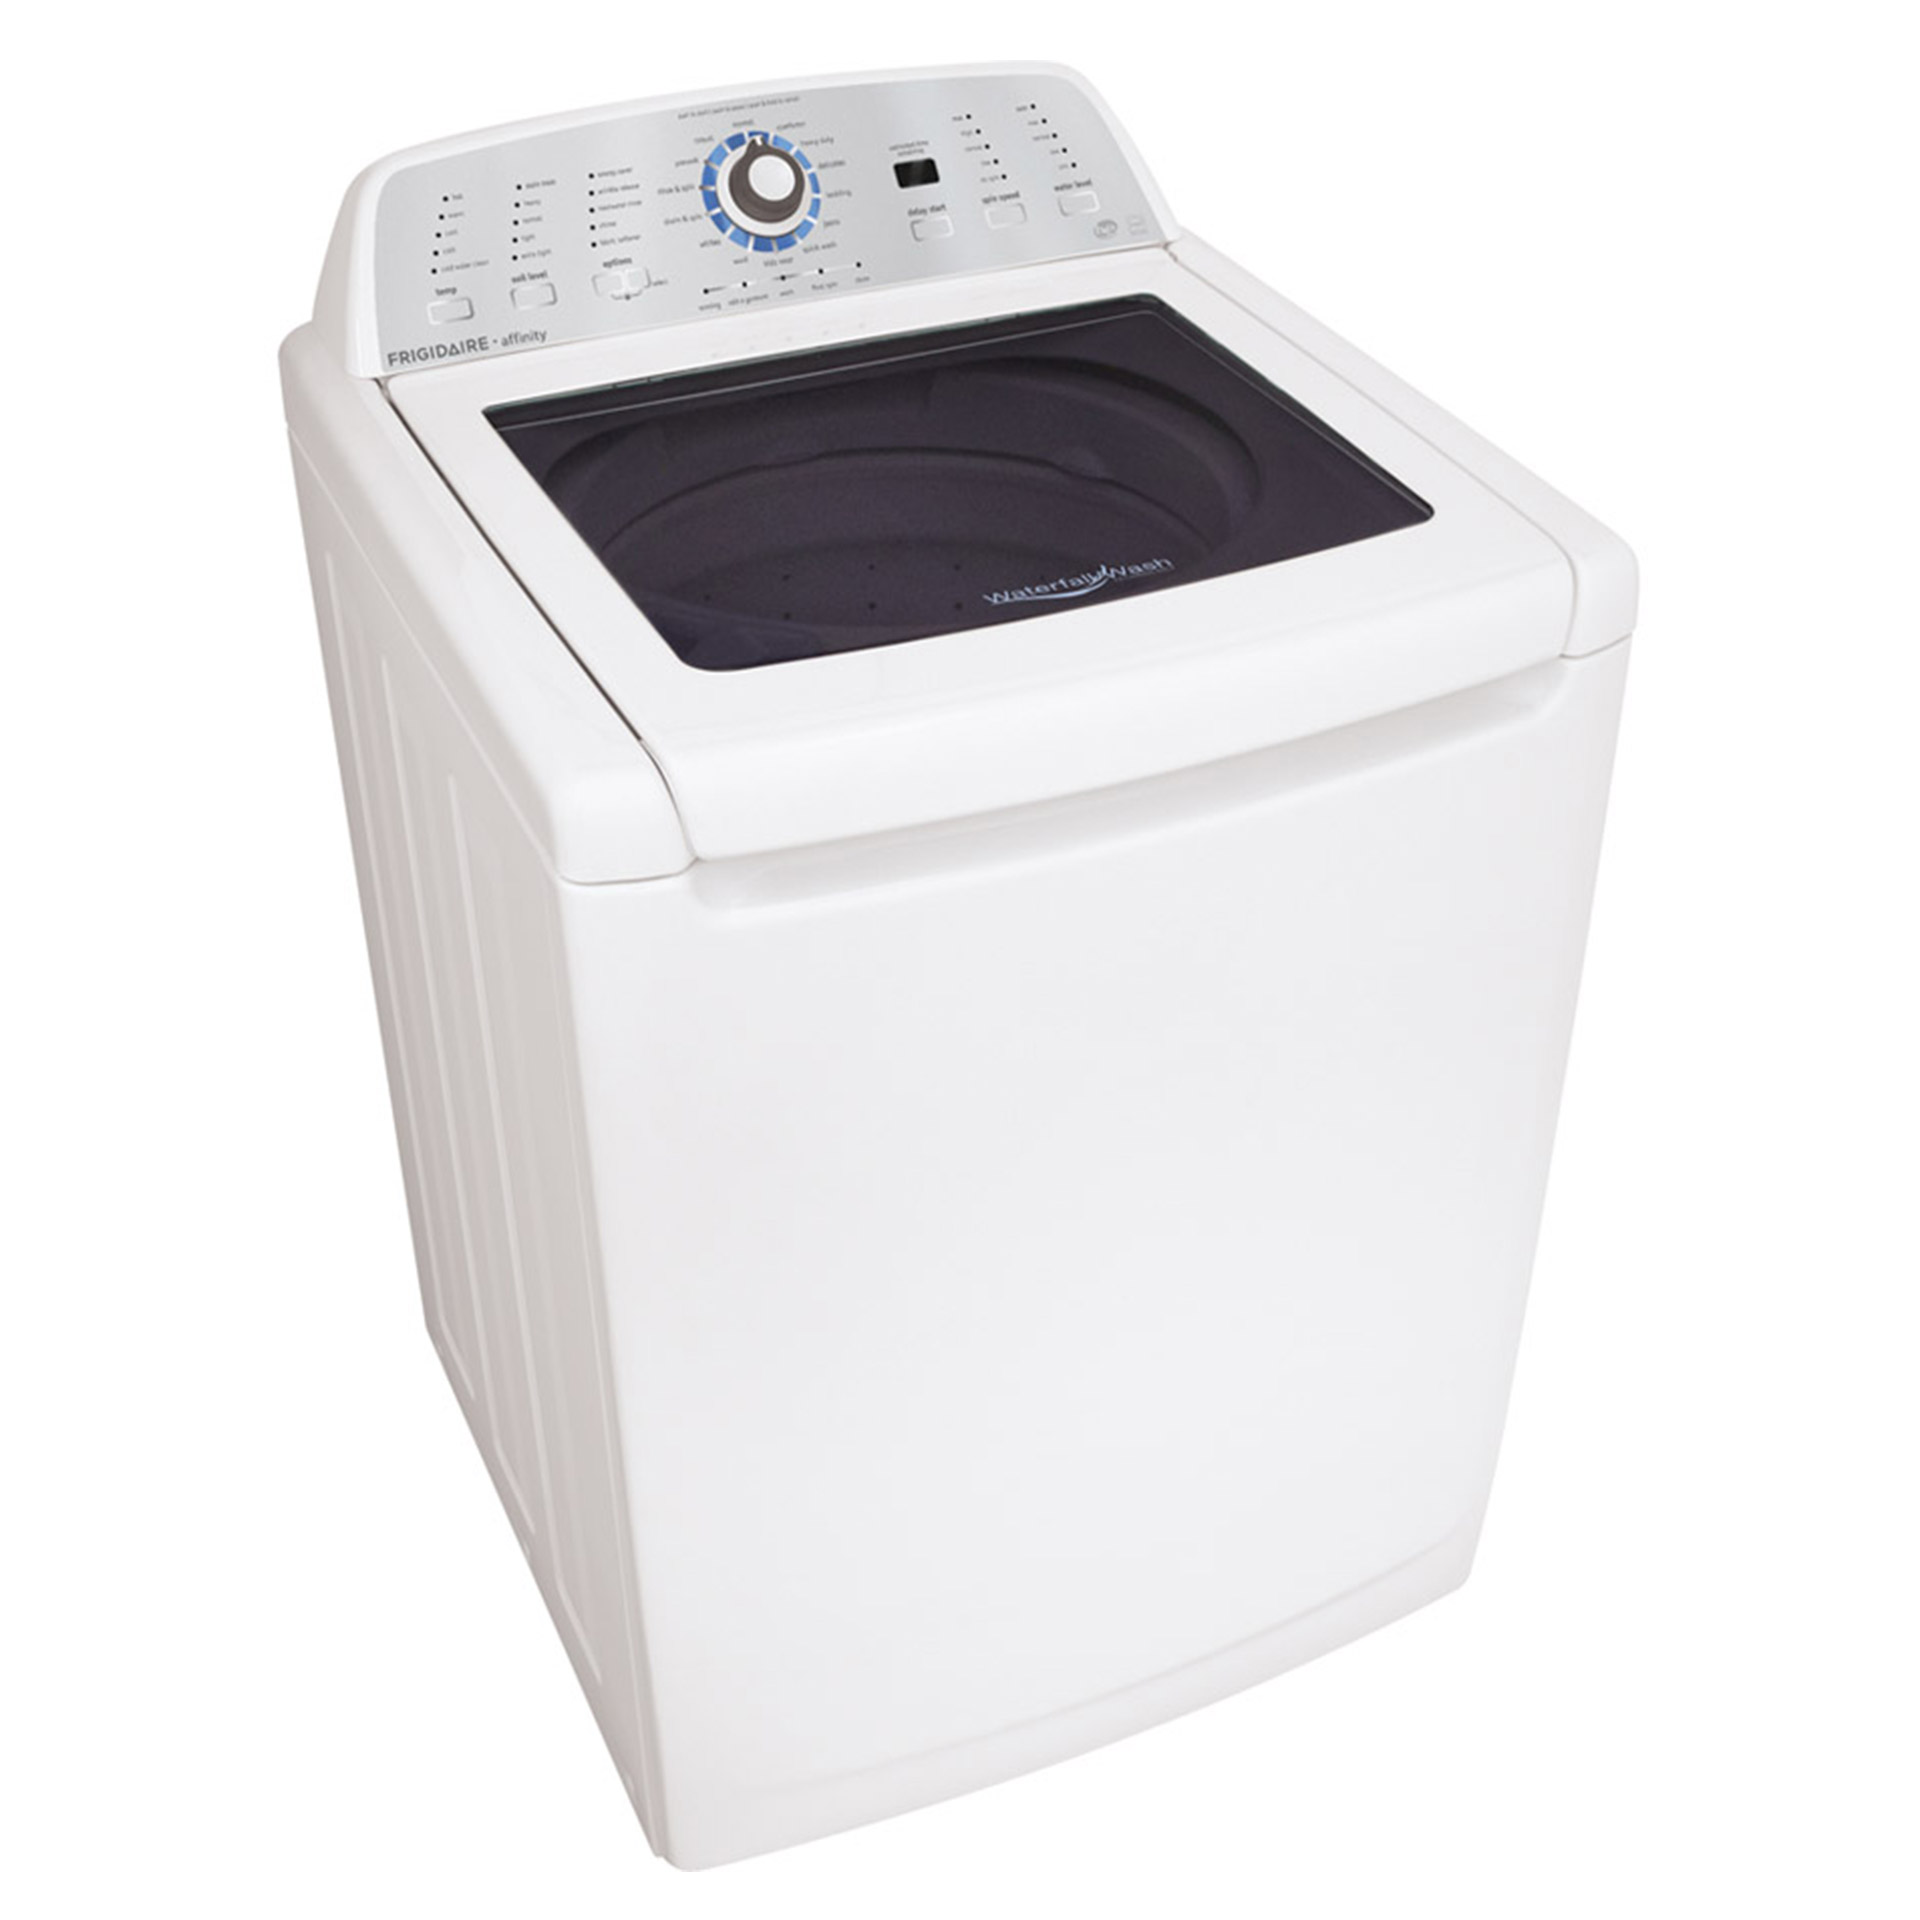 frigidaire 3 4 cu ft high efficiency top load washer fahe4044mw review. Black Bedroom Furniture Sets. Home Design Ideas